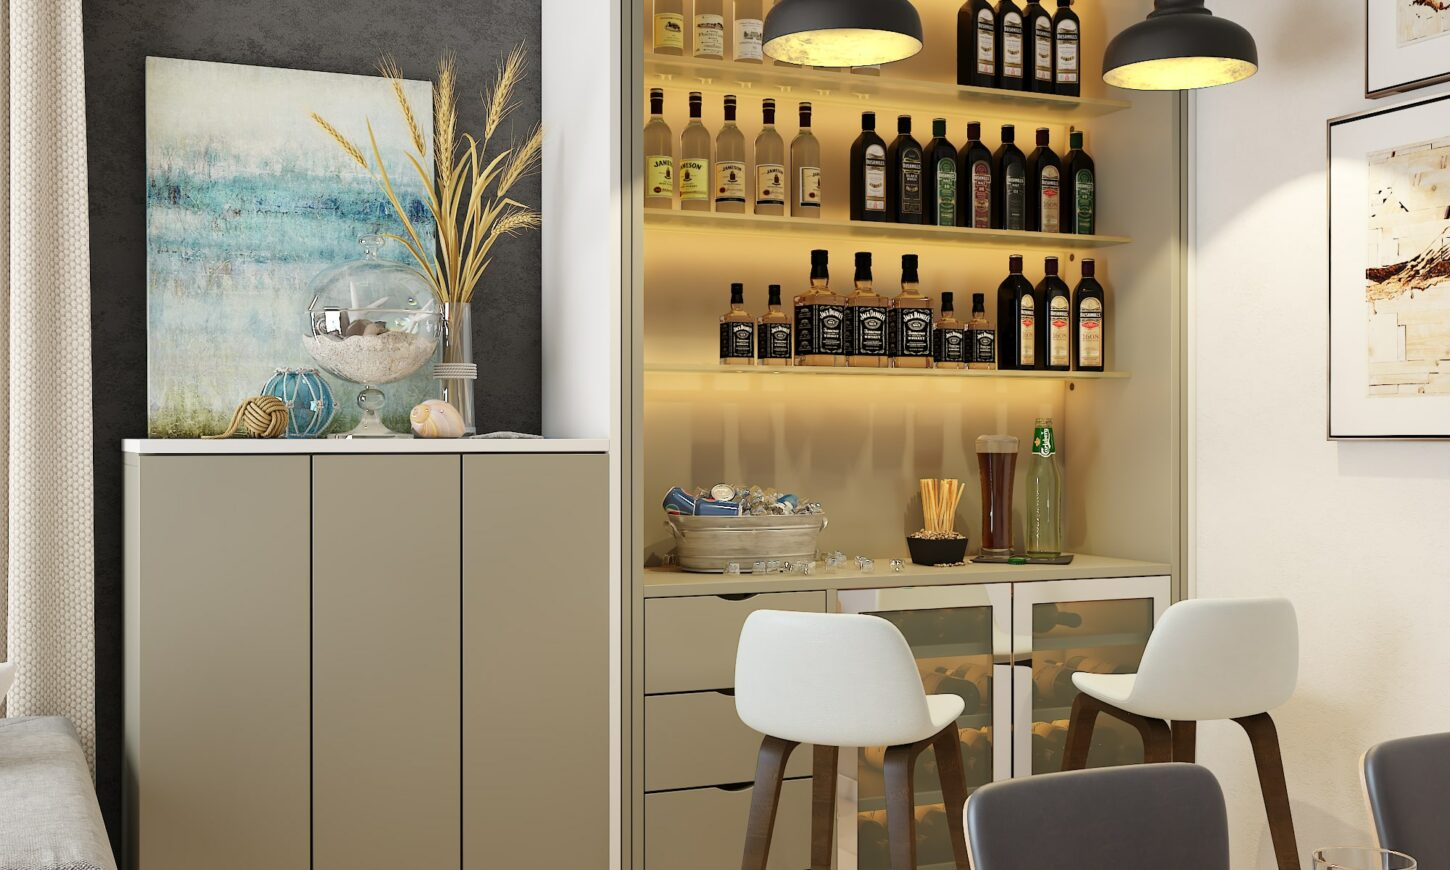 Modern minimal style dining room design crockery unit, mini bar, modern wall dining table with chairs, lights.